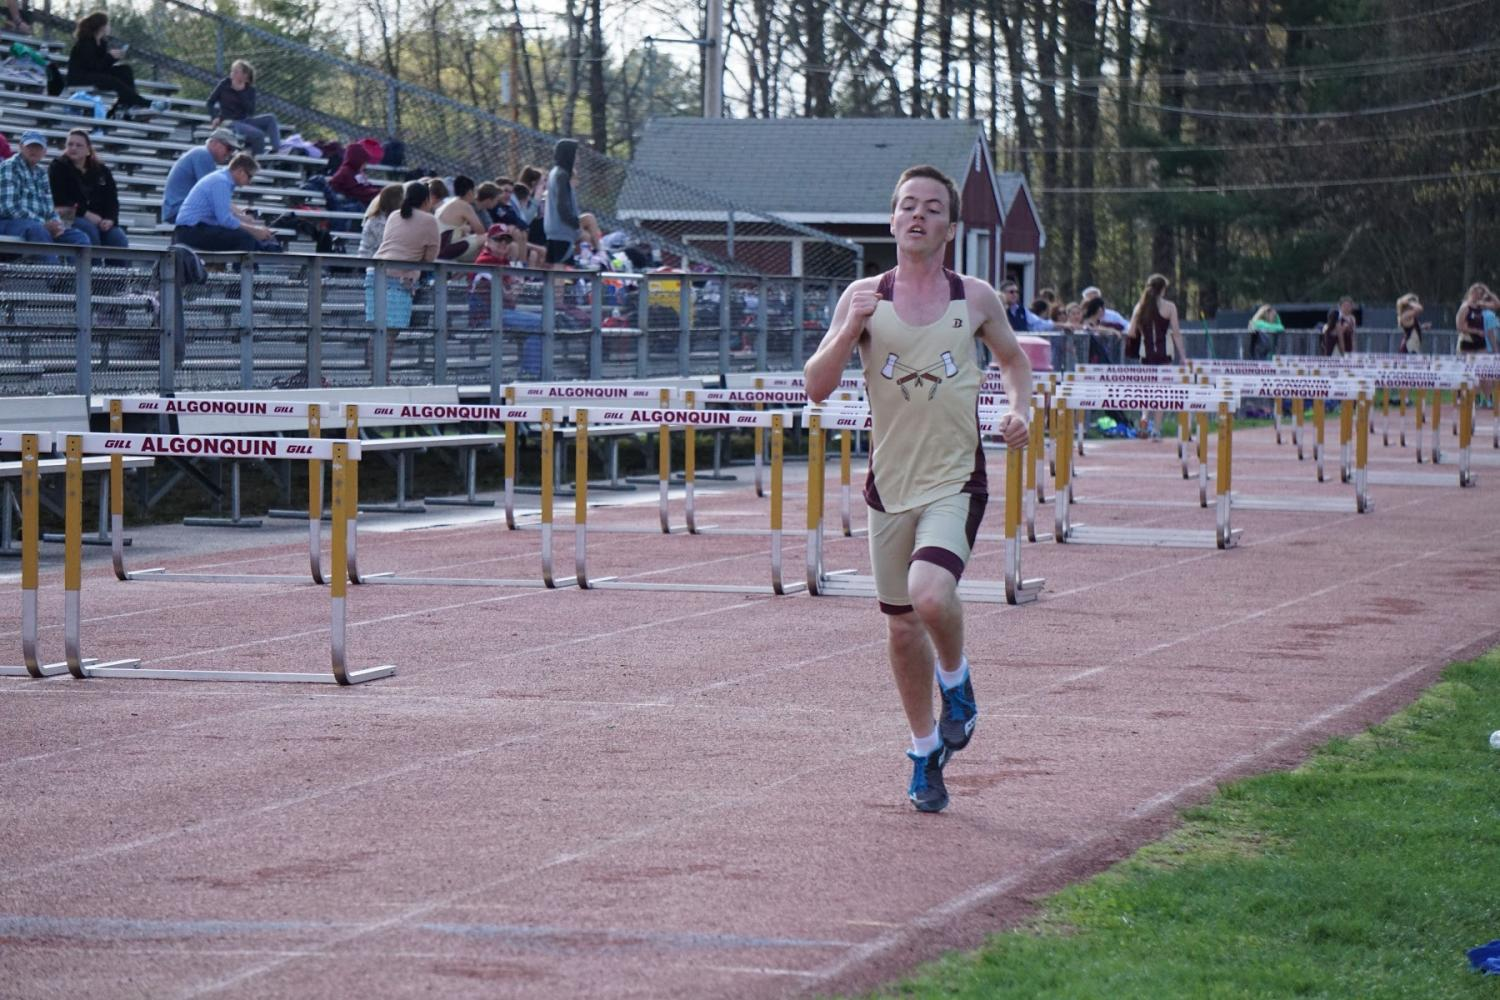 Junior+Andrew+Michalik+sprints++towards+the+finish+line%2C+hoping+to+win+first+place.